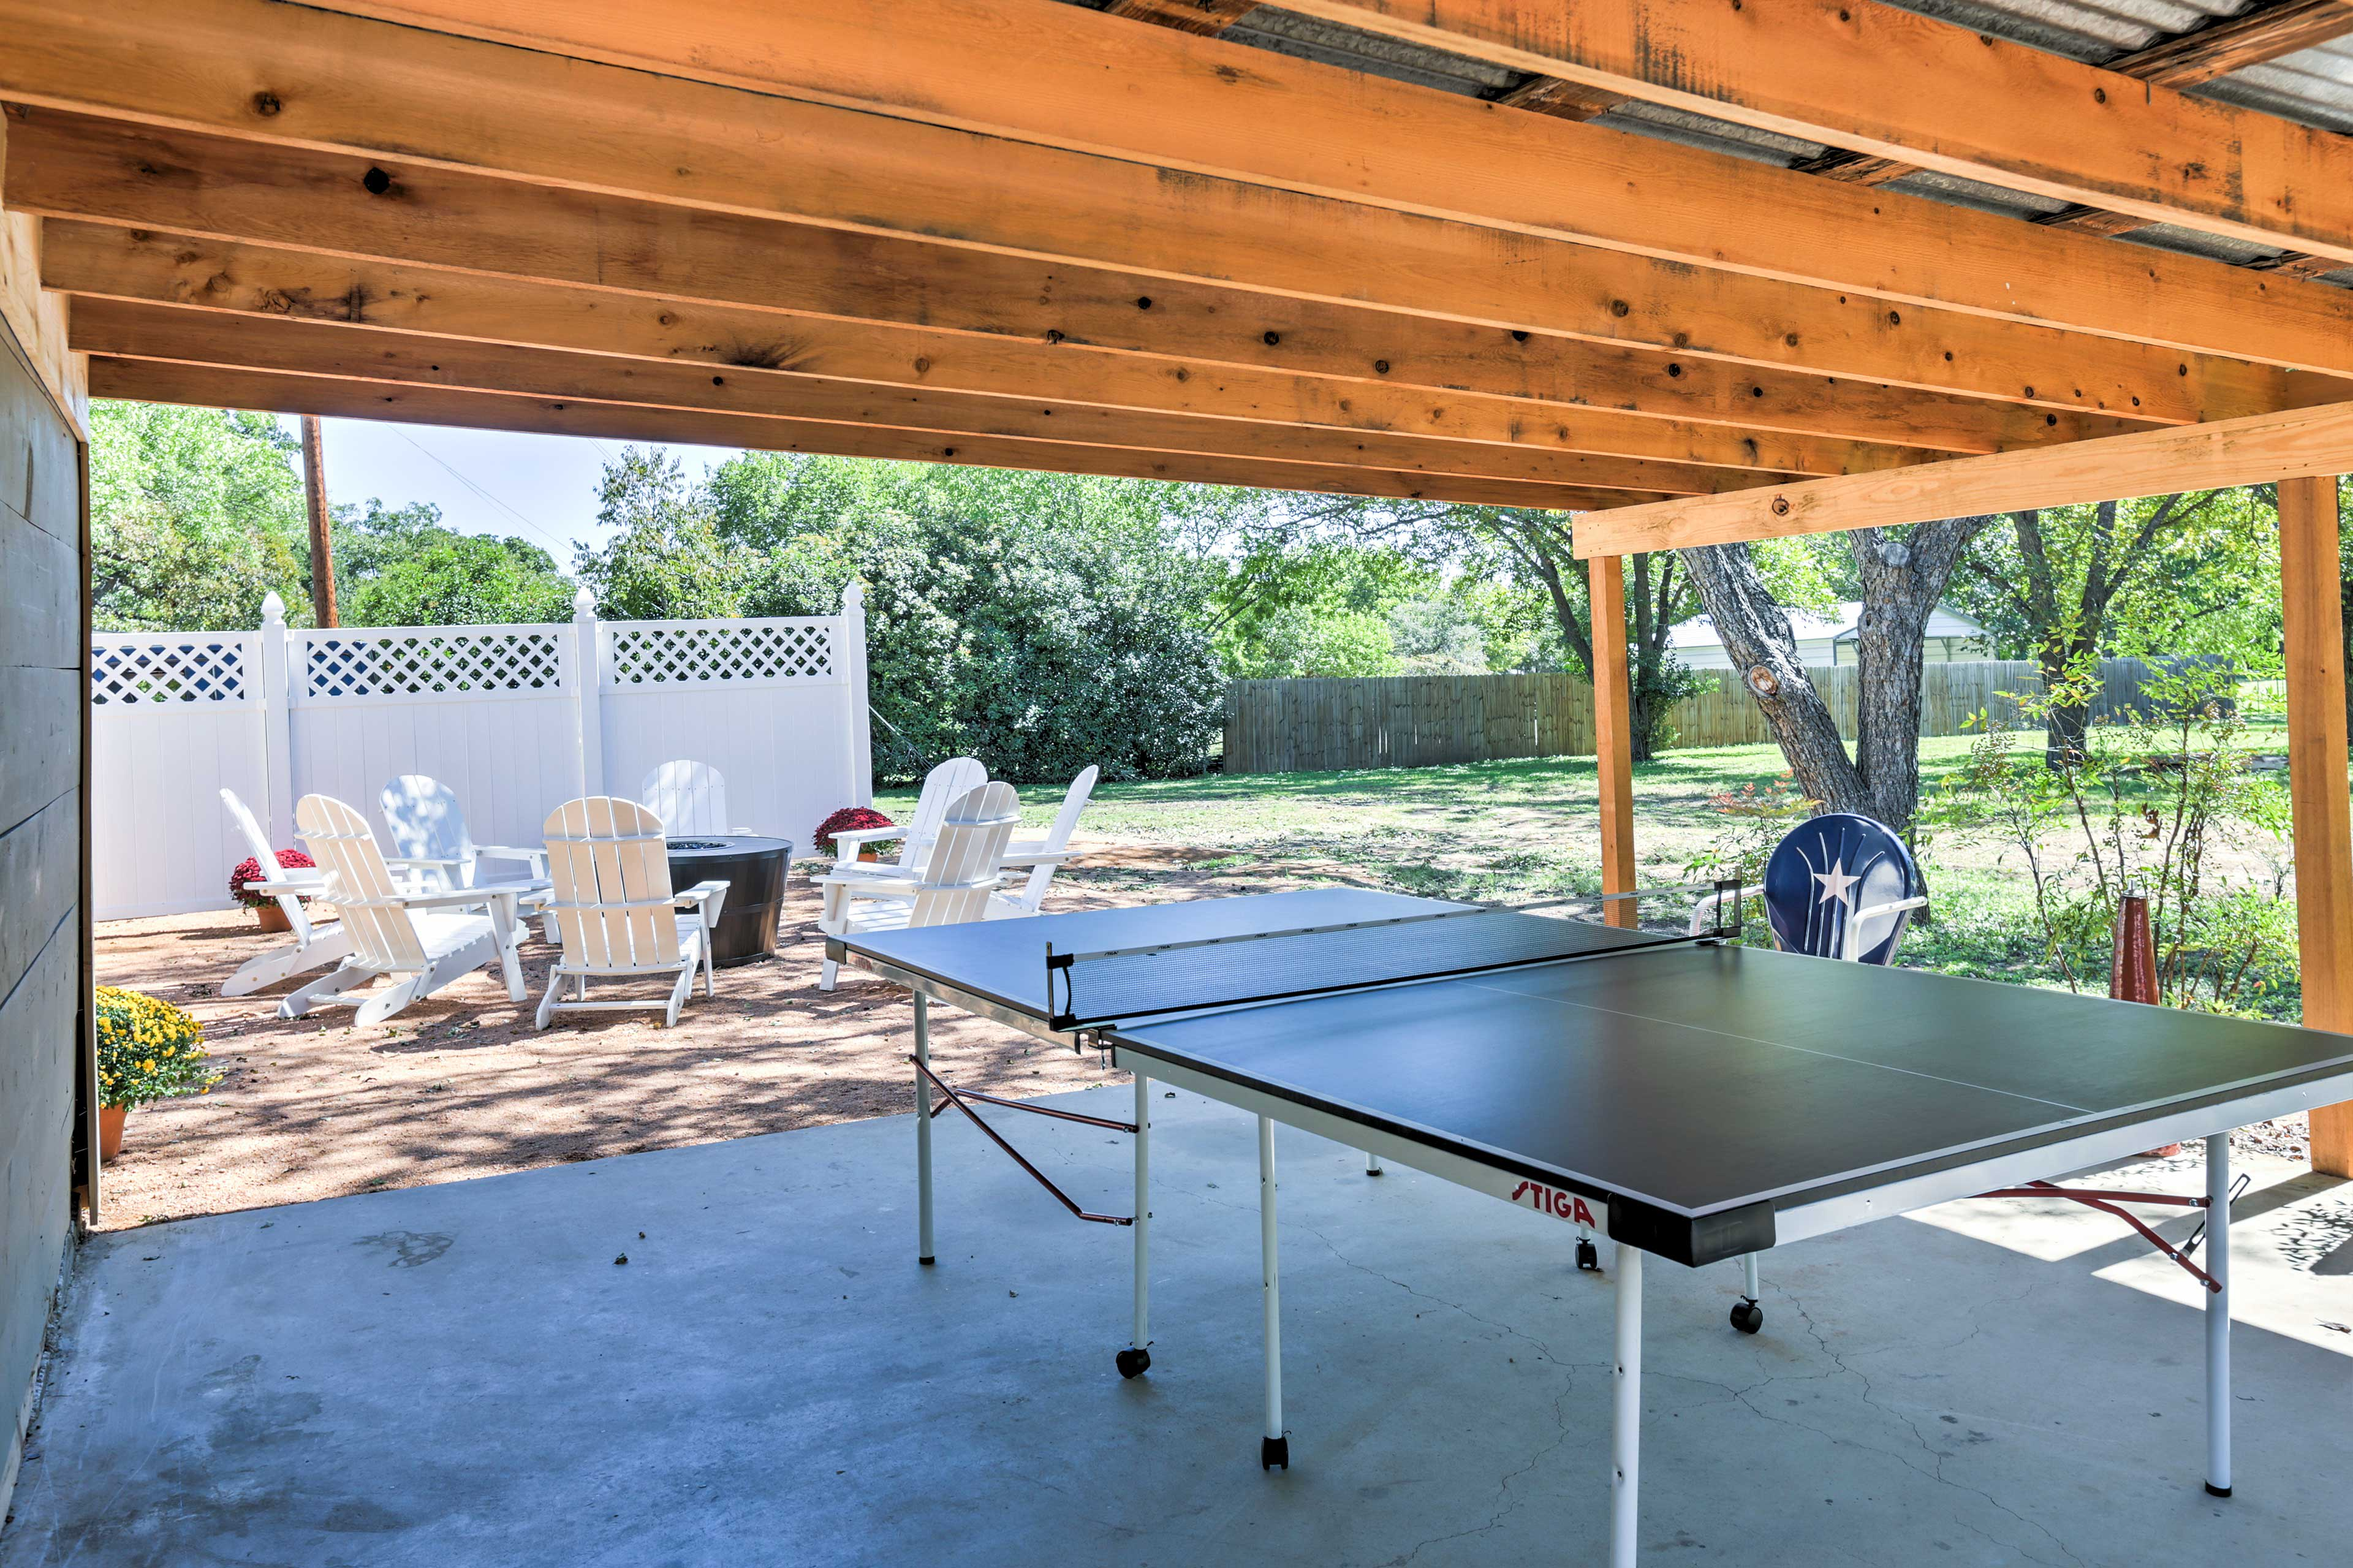 Challenge everyone to a fun game of ping pong at the table outside.